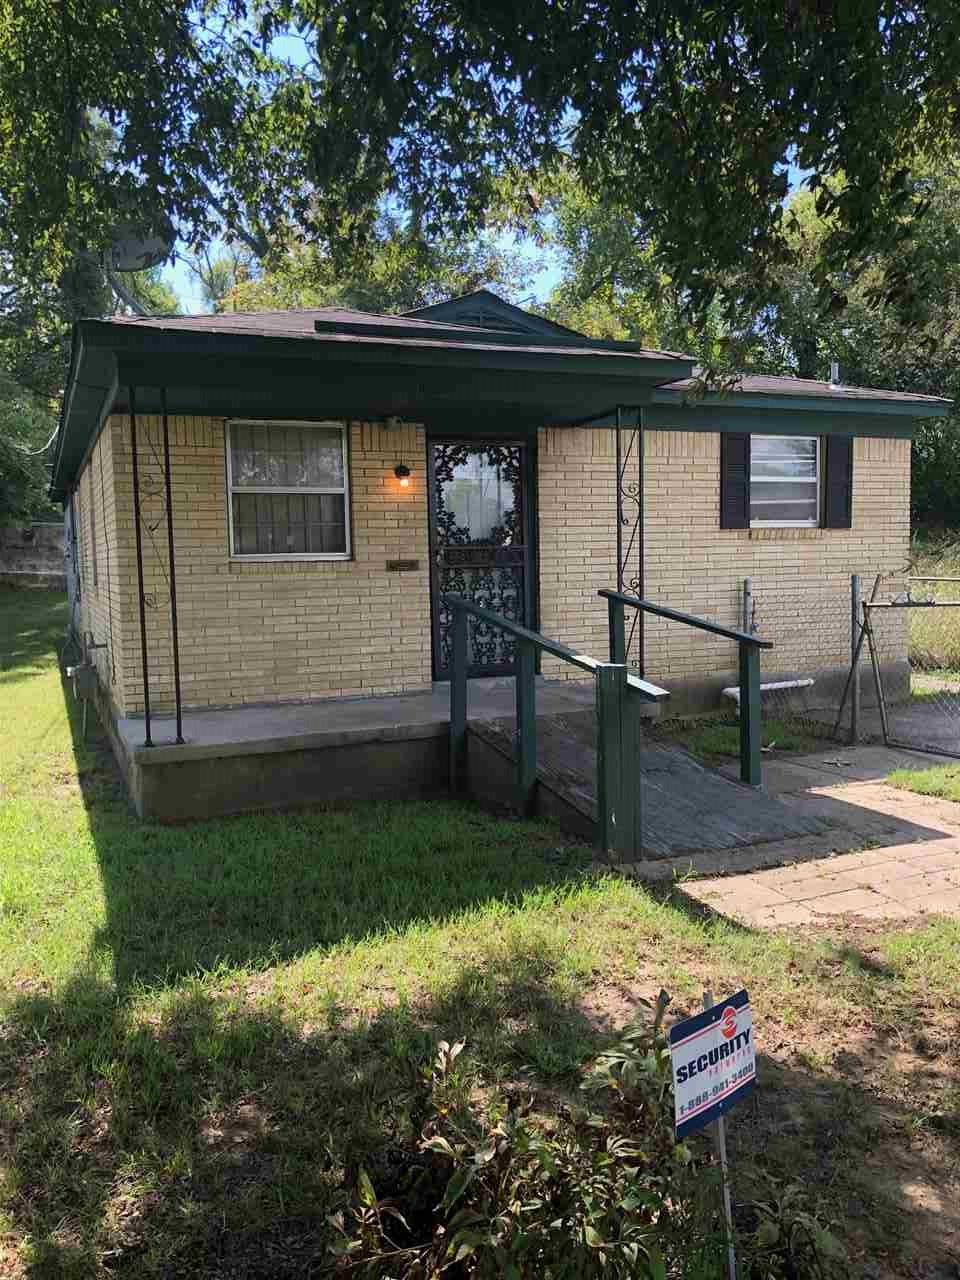 Property for sale at 1137 St Charles Ave, Memphis,  TN 38107